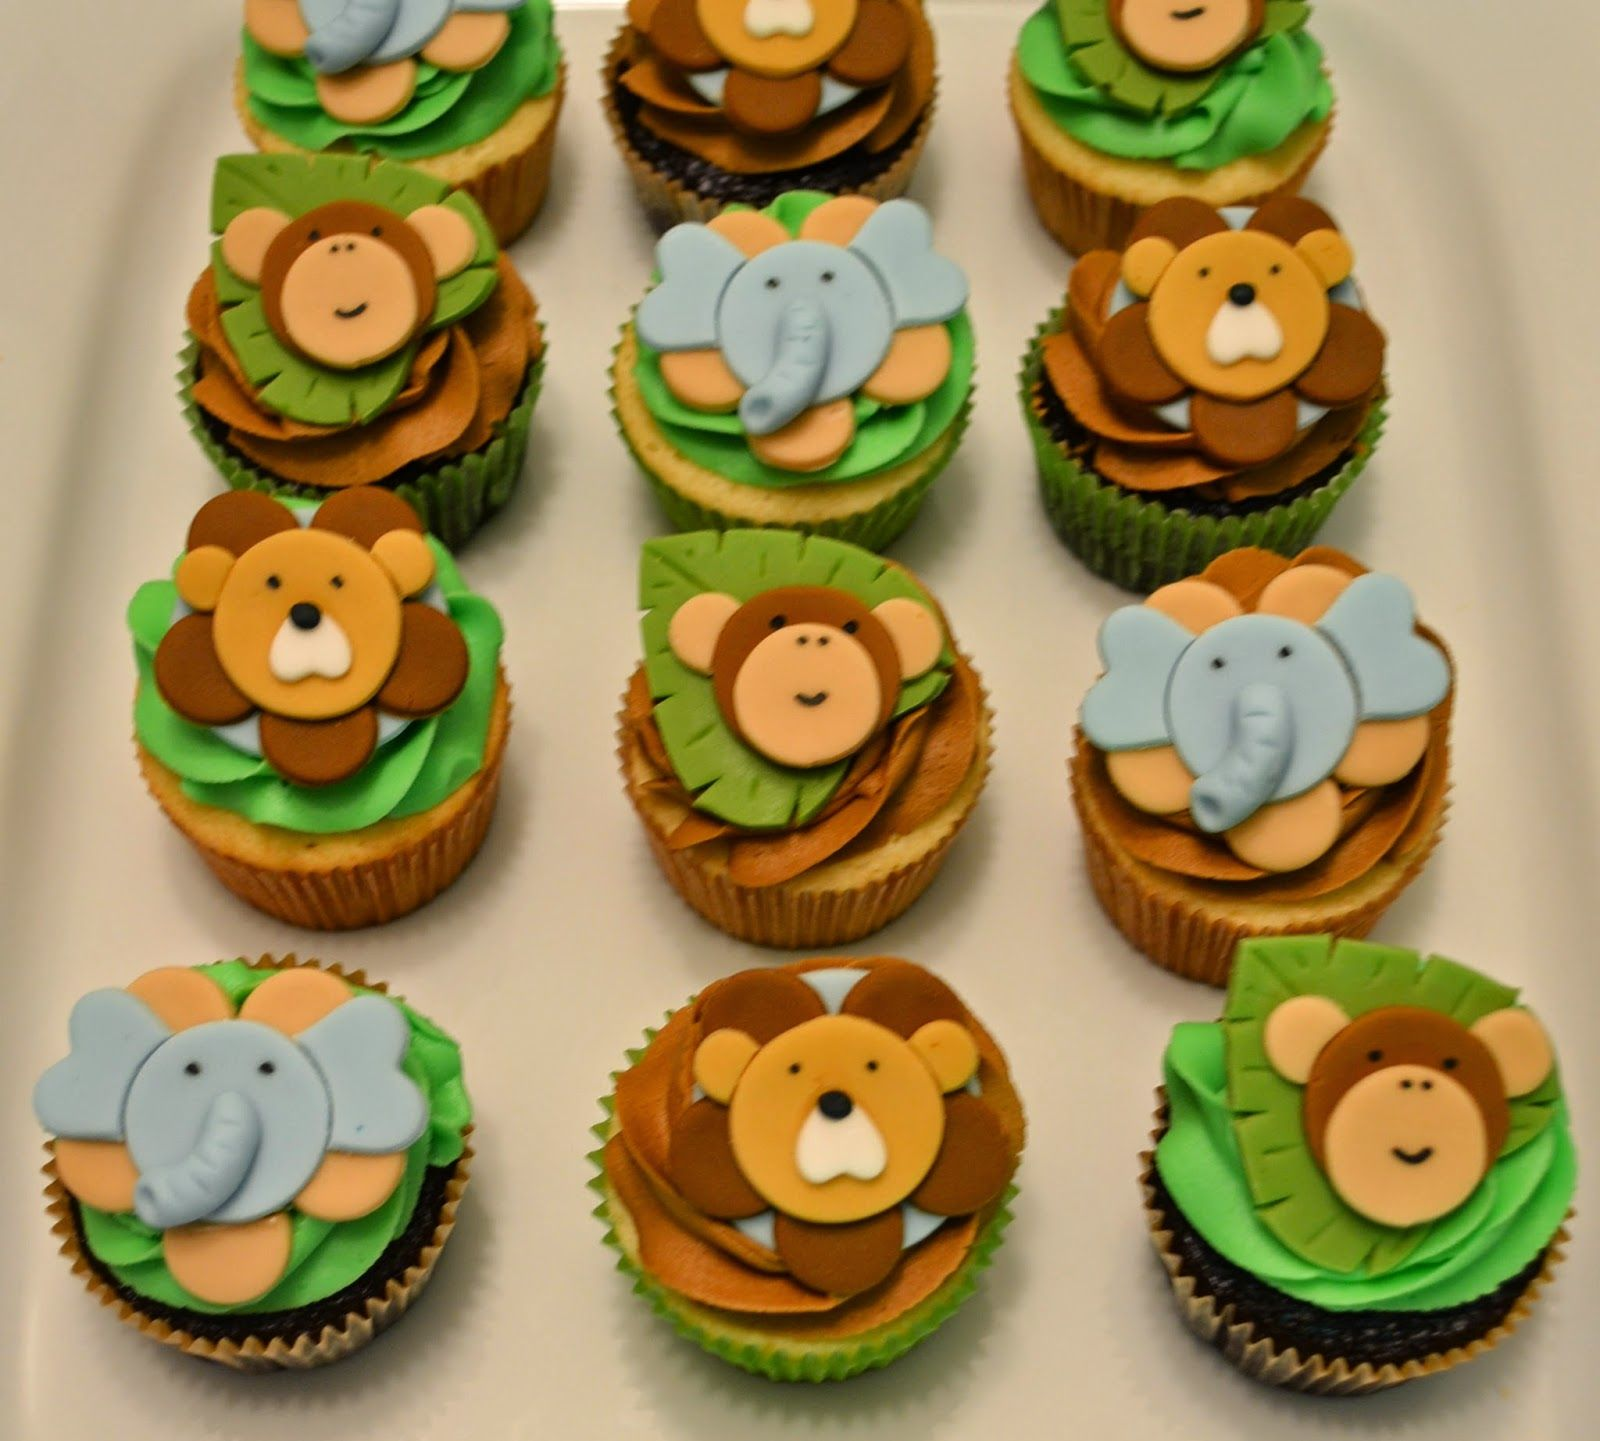 Pokemon Kuchen Rezept Jungle Cupcakes Baked Goods Cupcakes Jungle Cupcakes